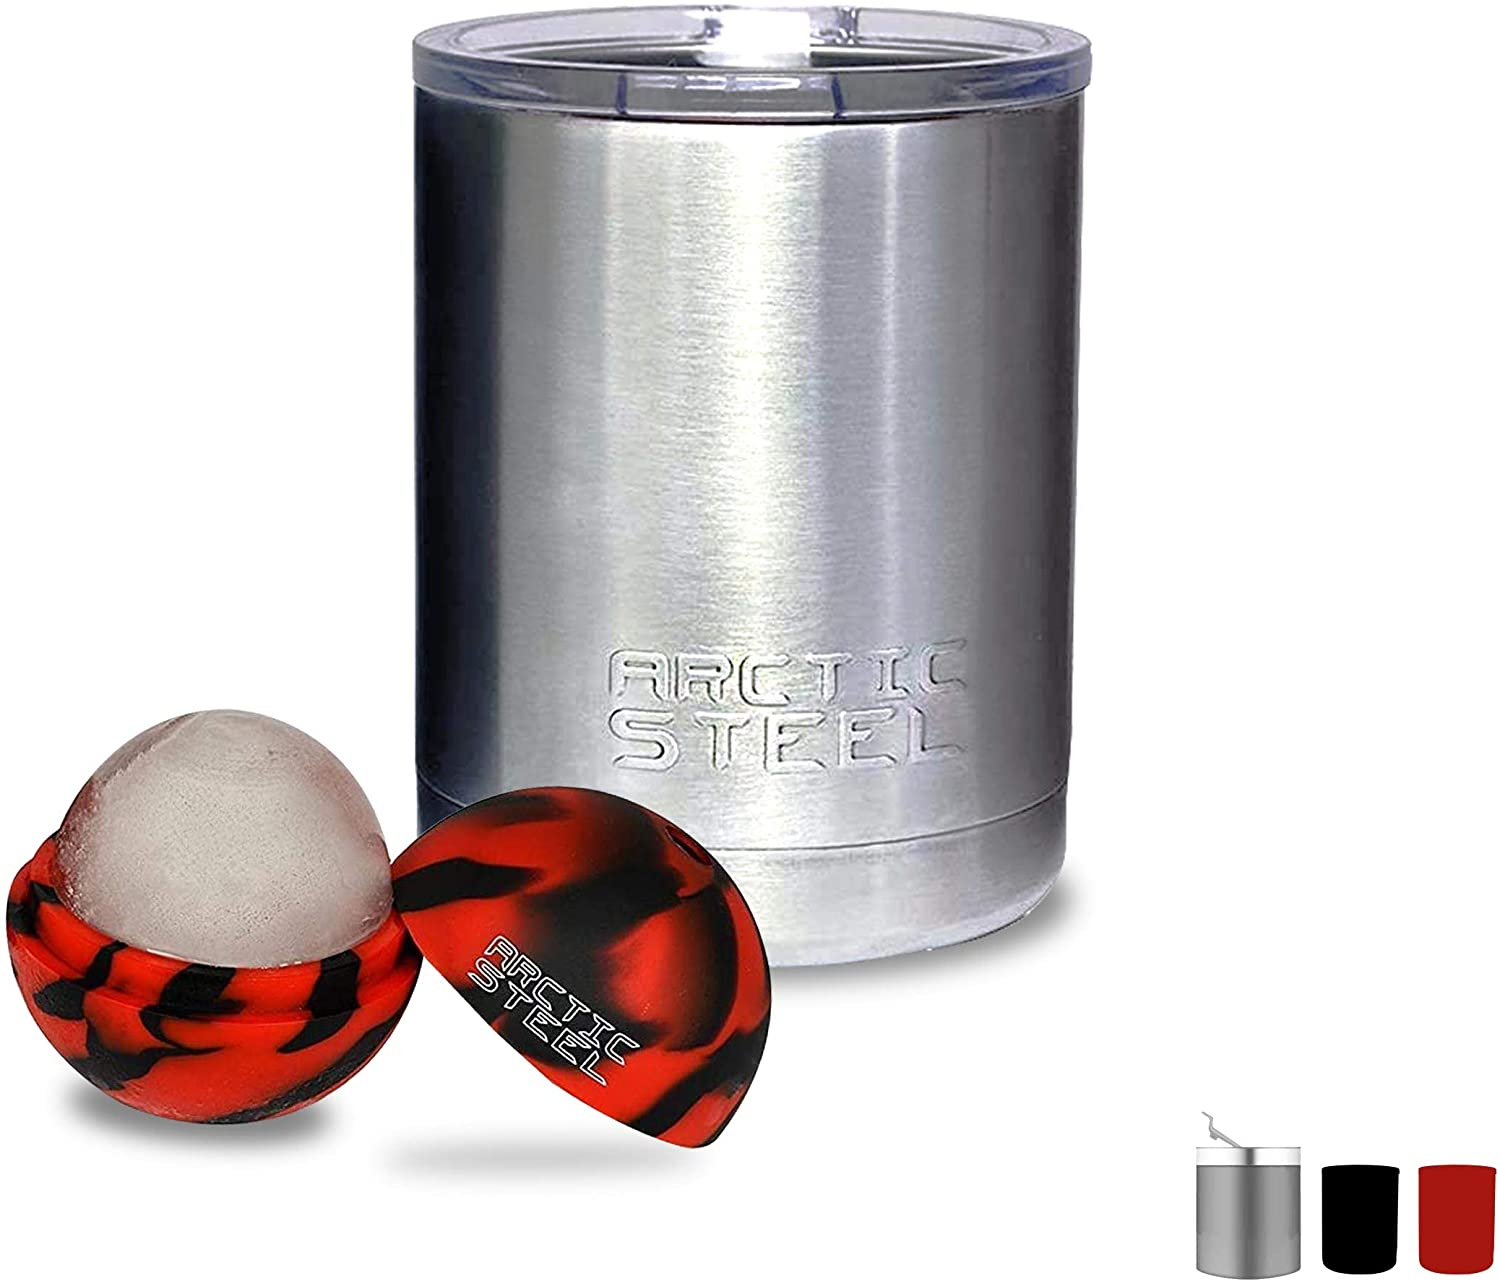 Arctic Steel 10oz Insulated Lowball Tumbler with Lid - Perfect for Coffee, Whiskey, and Cocktails - Durable Stainless Steel, Powder Coated Double Wall Vacuum Mug – Stainless Steel with Ice Ball